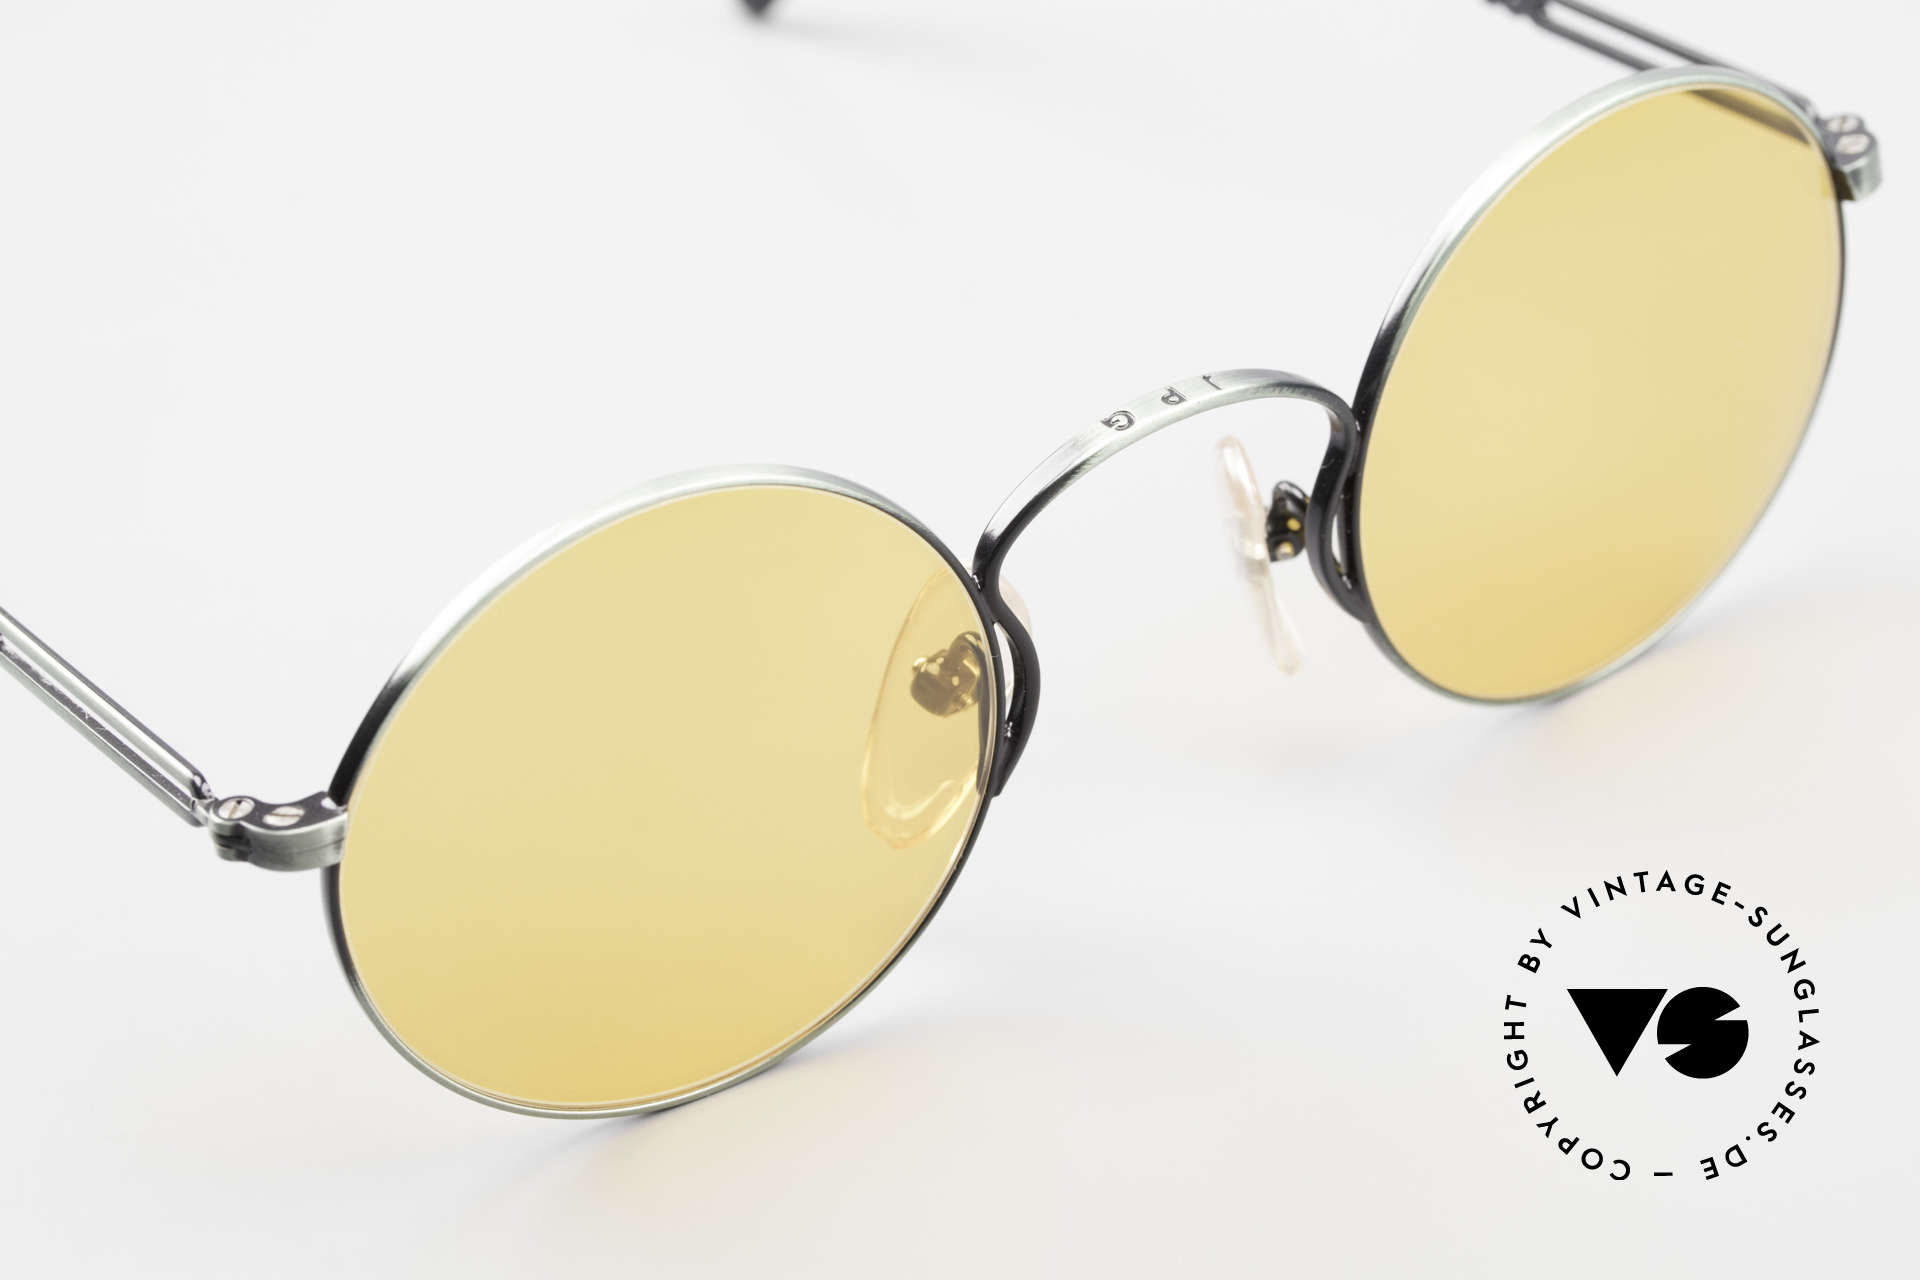 Jean Paul Gaultier 55-0172 Round 90's Vintage Glasses JPG, NO RETRO shades, but an old J.P. Gaultier original, Made for Men and Women